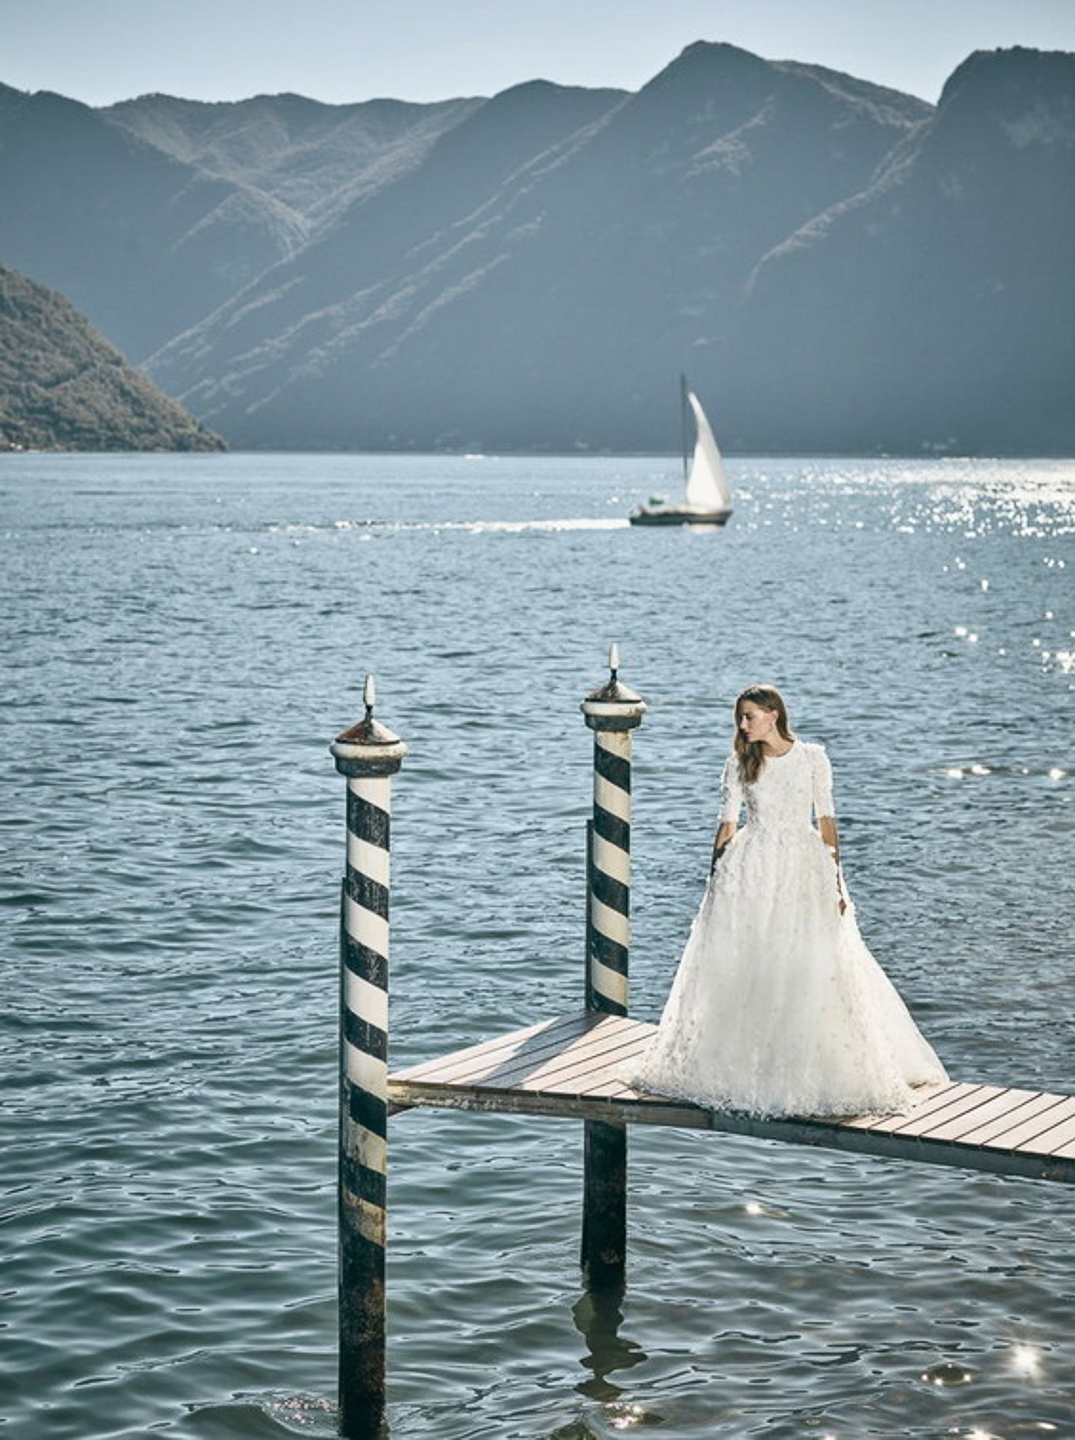 Villa Balbiano luxury property Lake Como Milan Italy available exclusive private rent rental photo shoot session couture dress stunning model Harpers Bazzar US water best view Italian nature 1